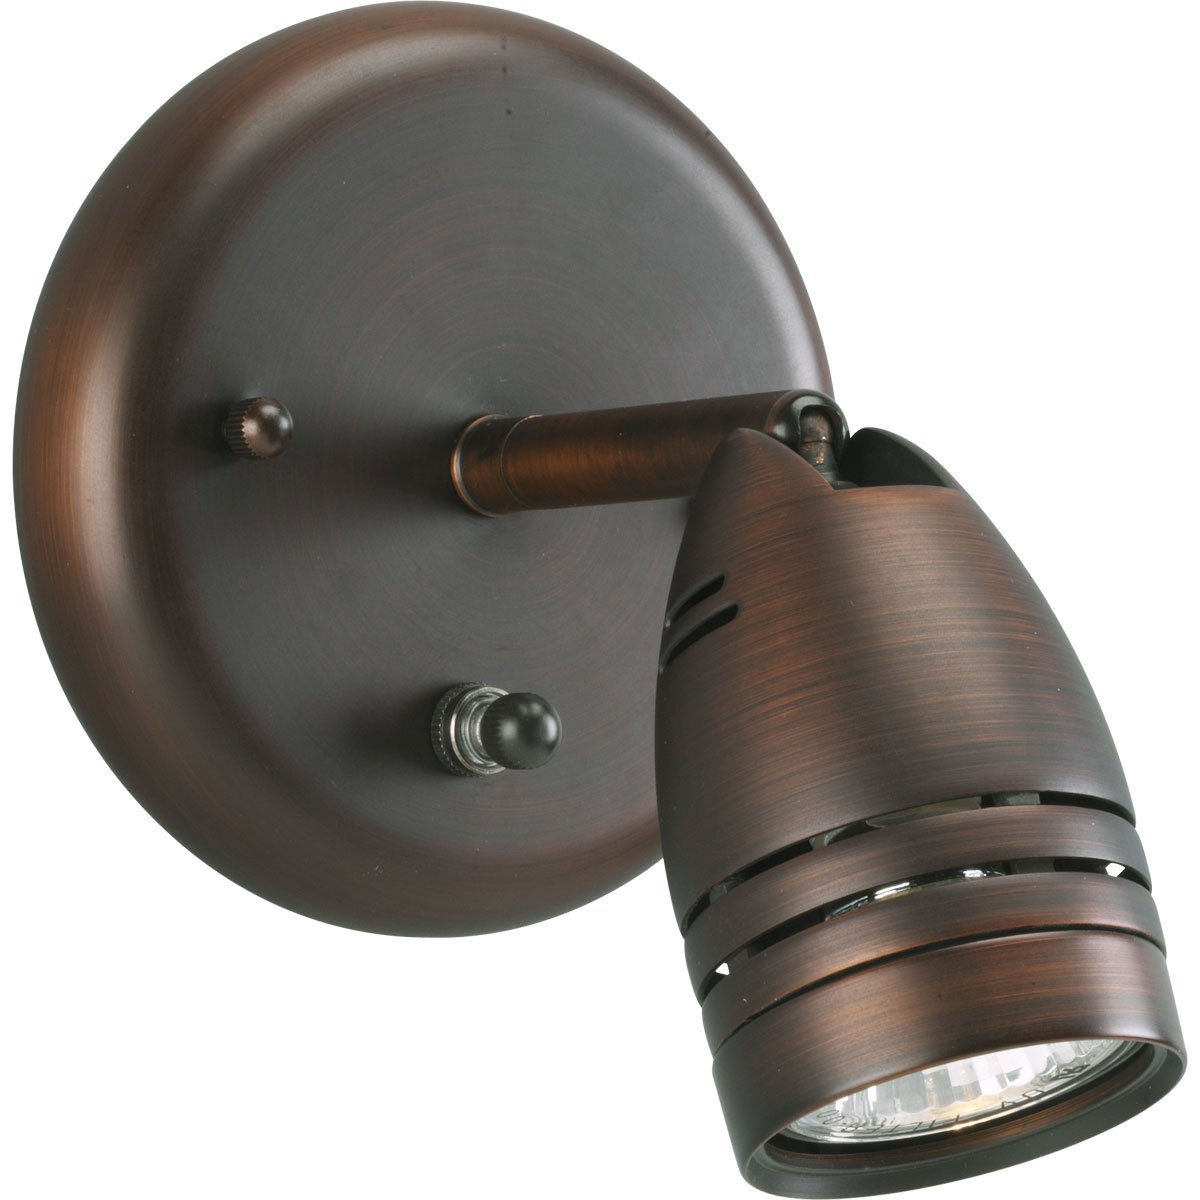 Progress Lighting P6154-174WB 1-Light Wall Mount Directional with On/Off Switch, Urban Bronze by Progress Lighting